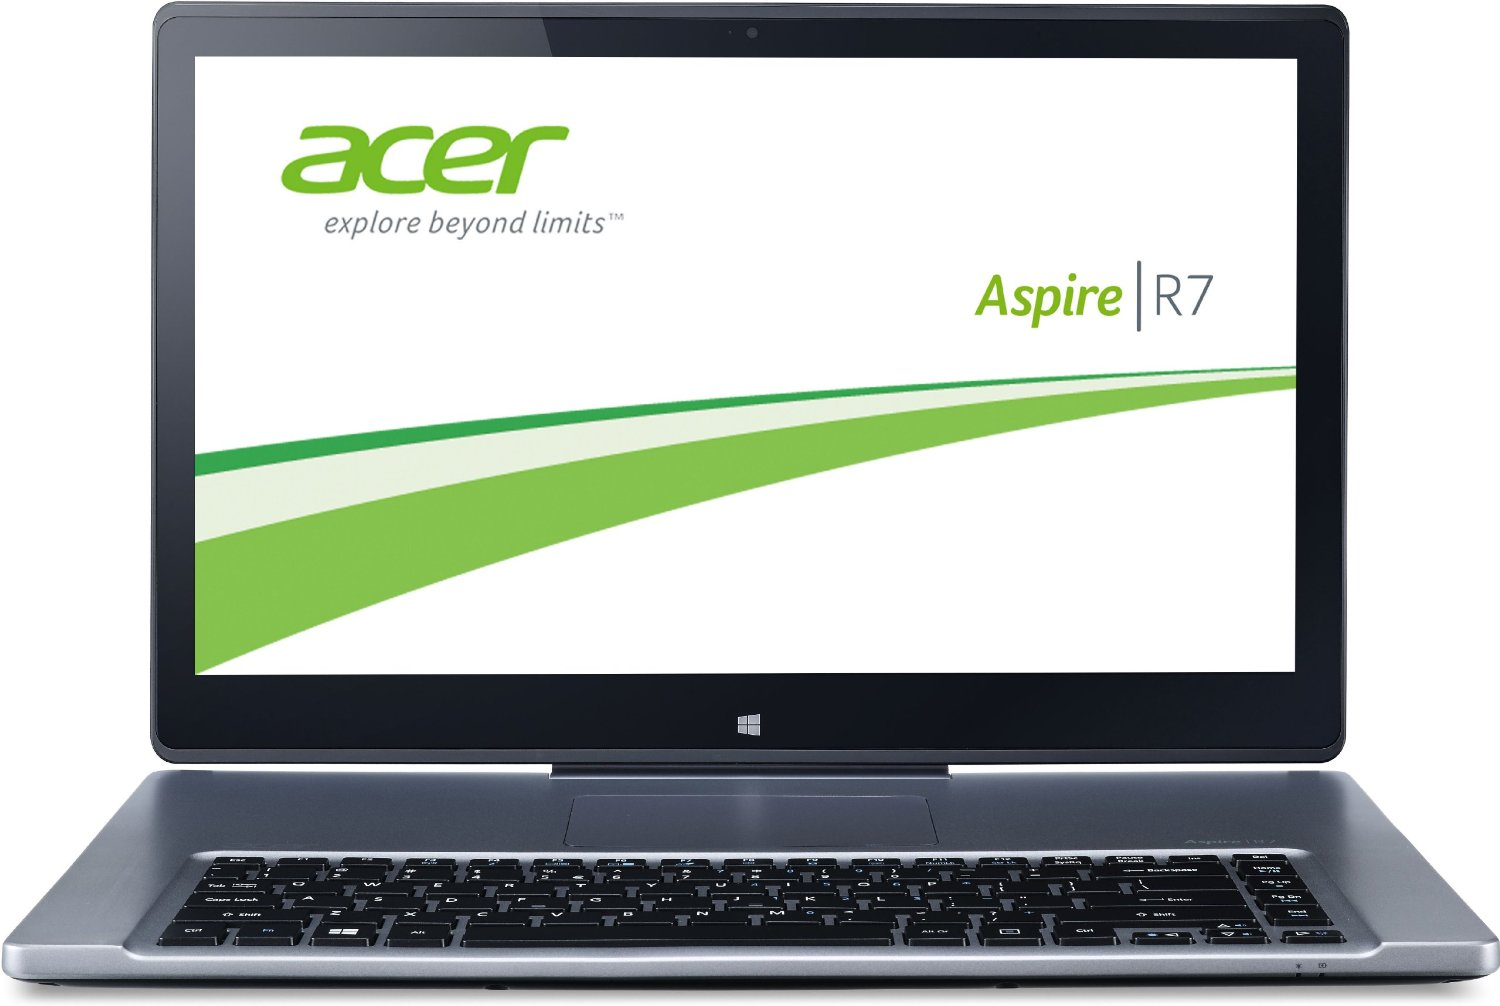 Acer Aspire R7-572G Drivers for Windows